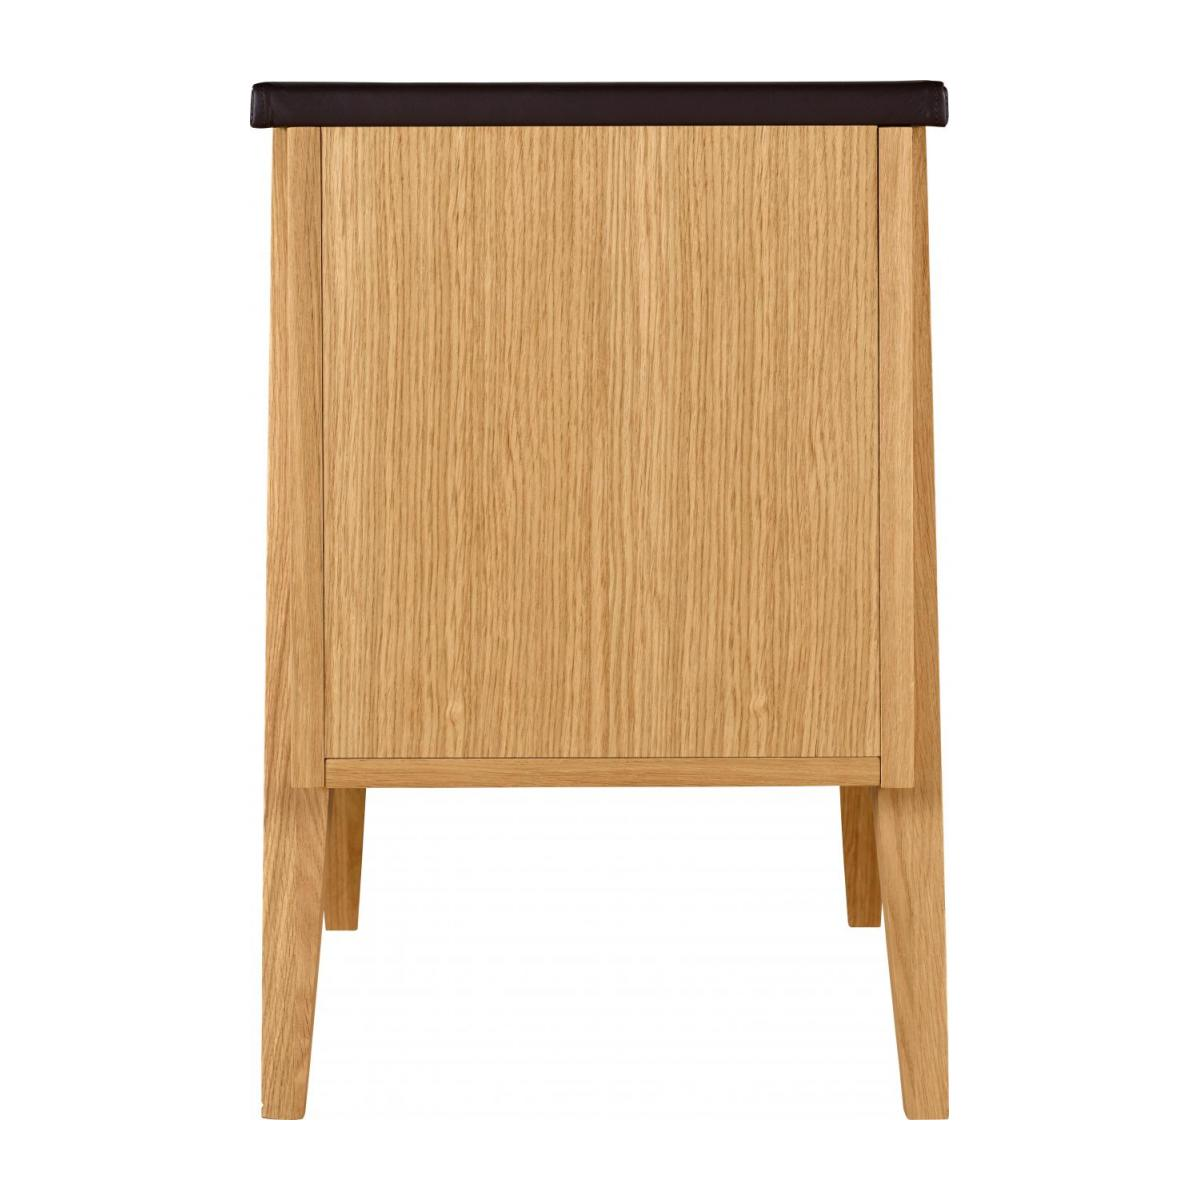 Cajonera de oficina - Roble- design by Habitat Design Studio n°4